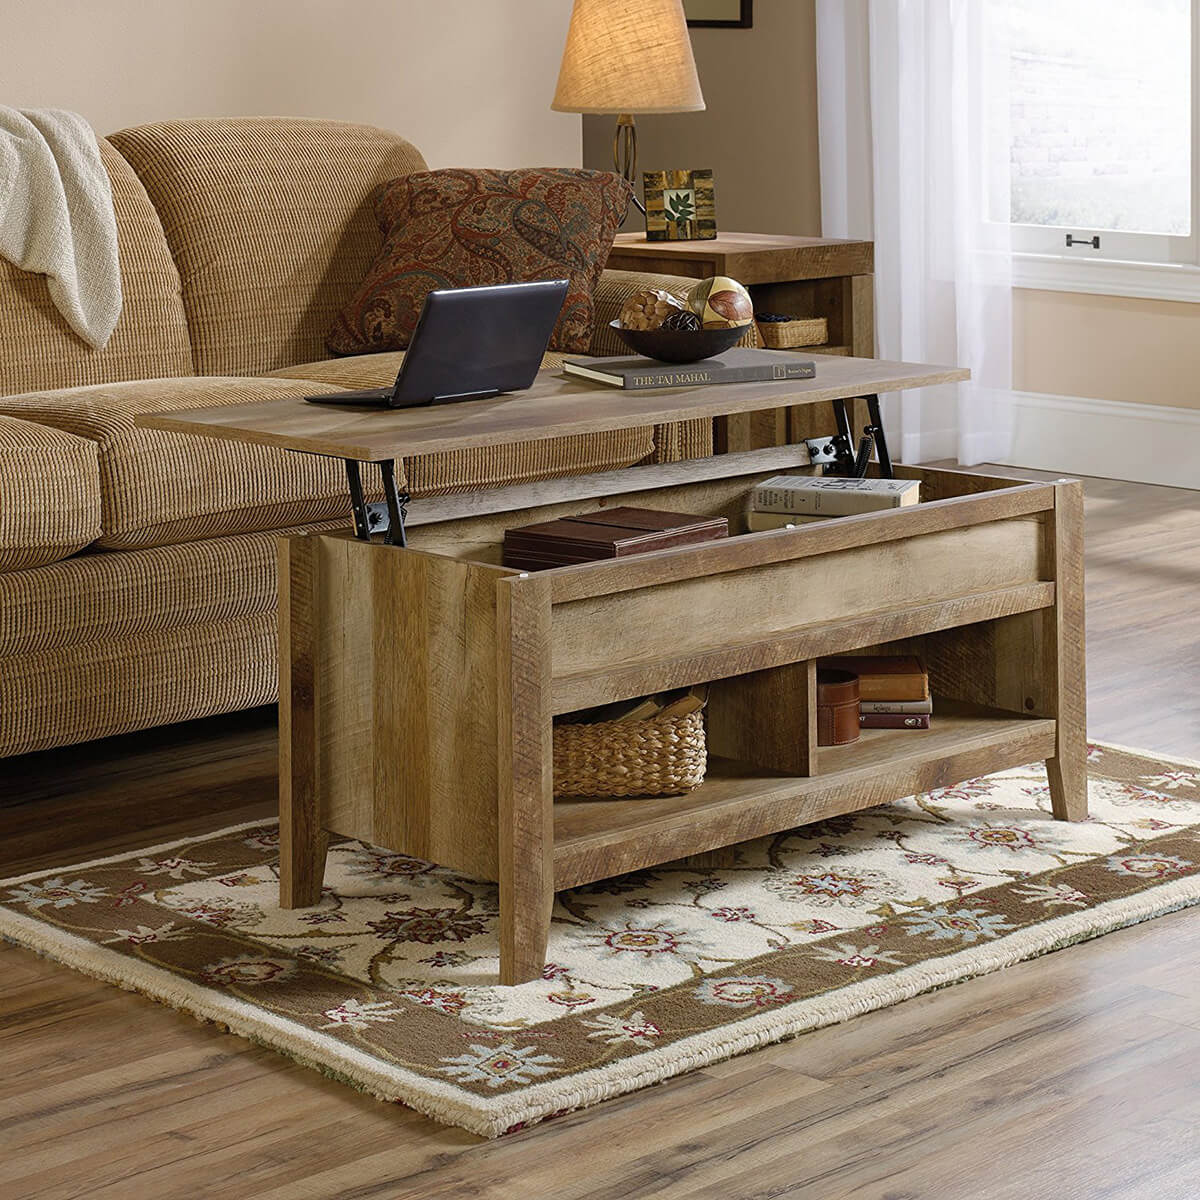 Extremely Cool Lift-Top Wooden Table